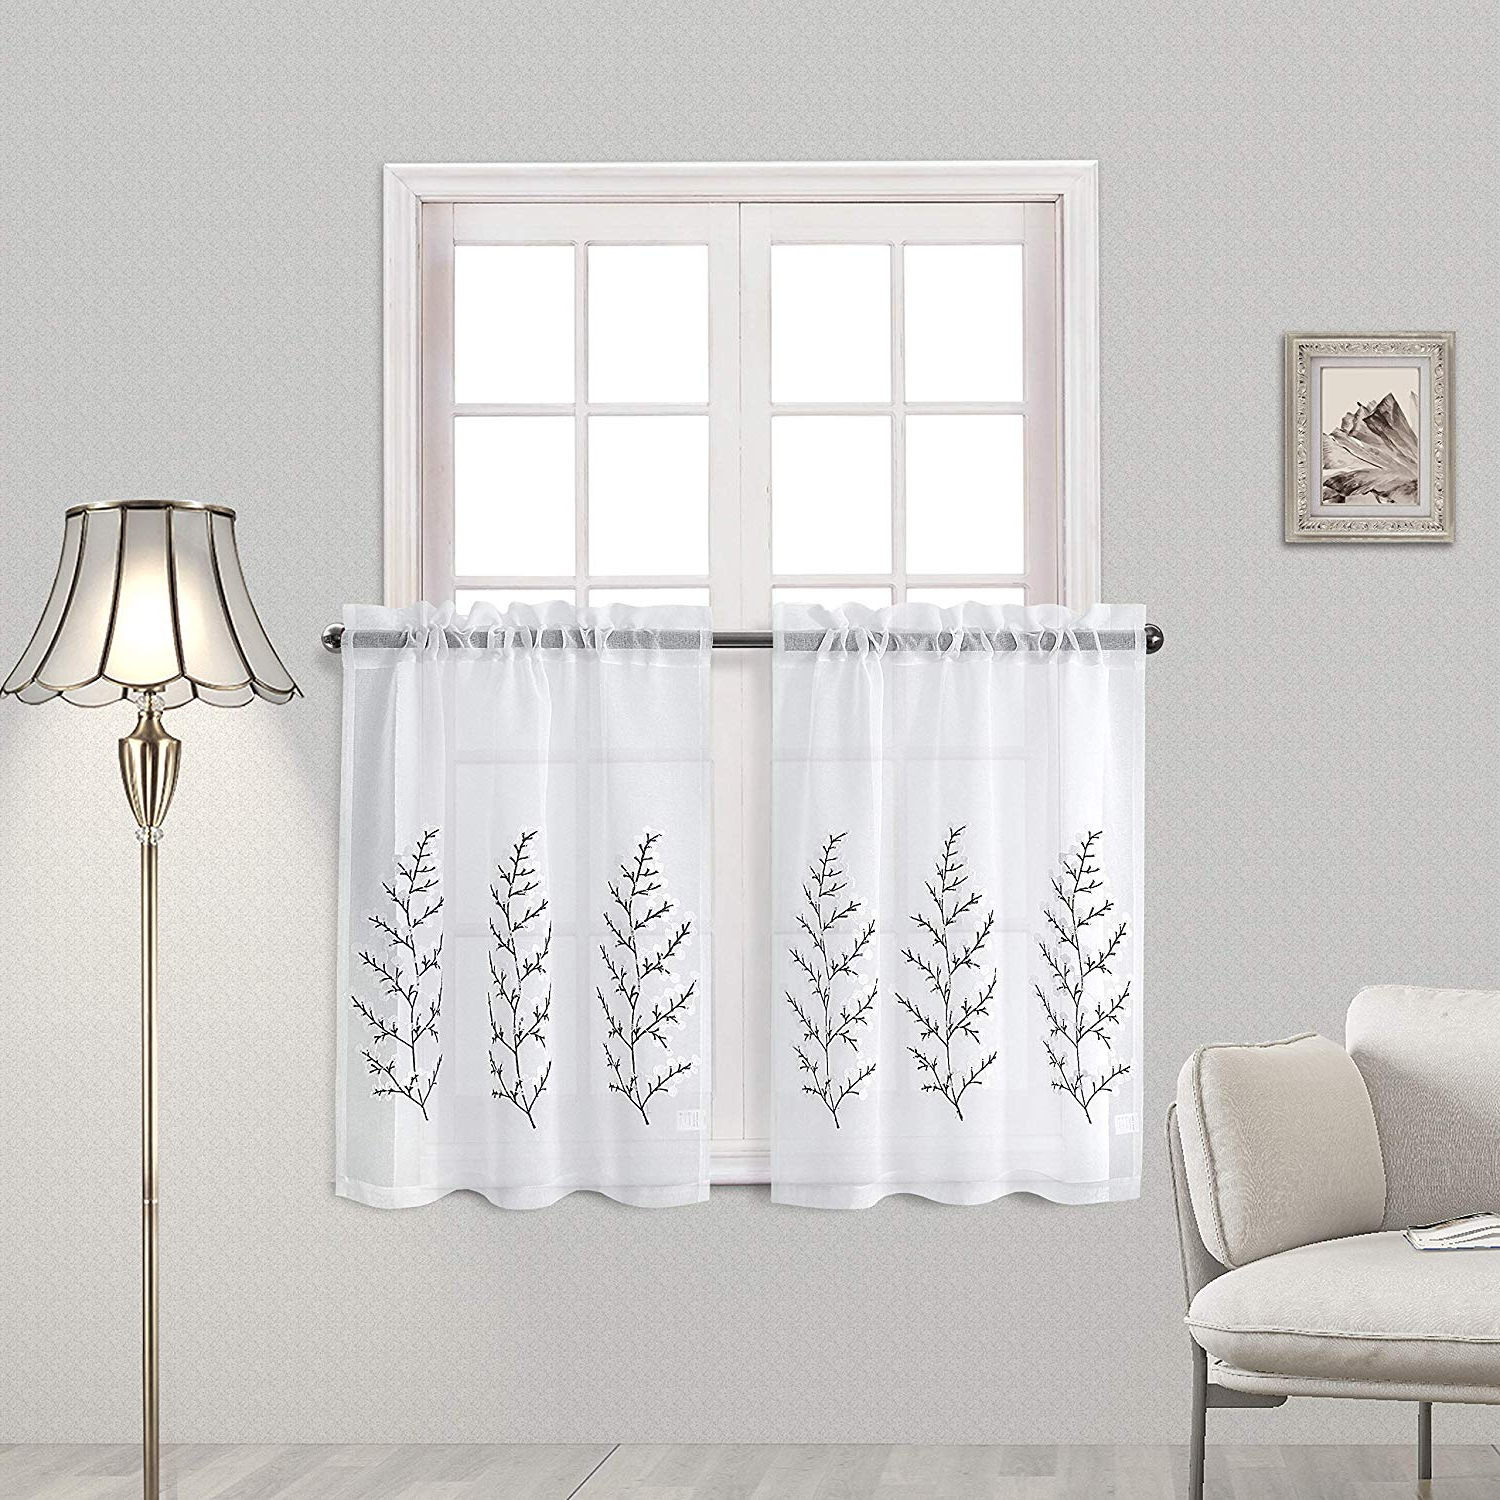 Preferred Dwcn Tier Curtains Kitchen Cafe Floral Embroidered Sheer Window Curtain  Set, Faux Linen Rod Pocket Window Curtains, W 32 X L 36 Inch, 2 Panels Within Embroidered Rod Pocket Kitchen Tiers (View 15 of 20)